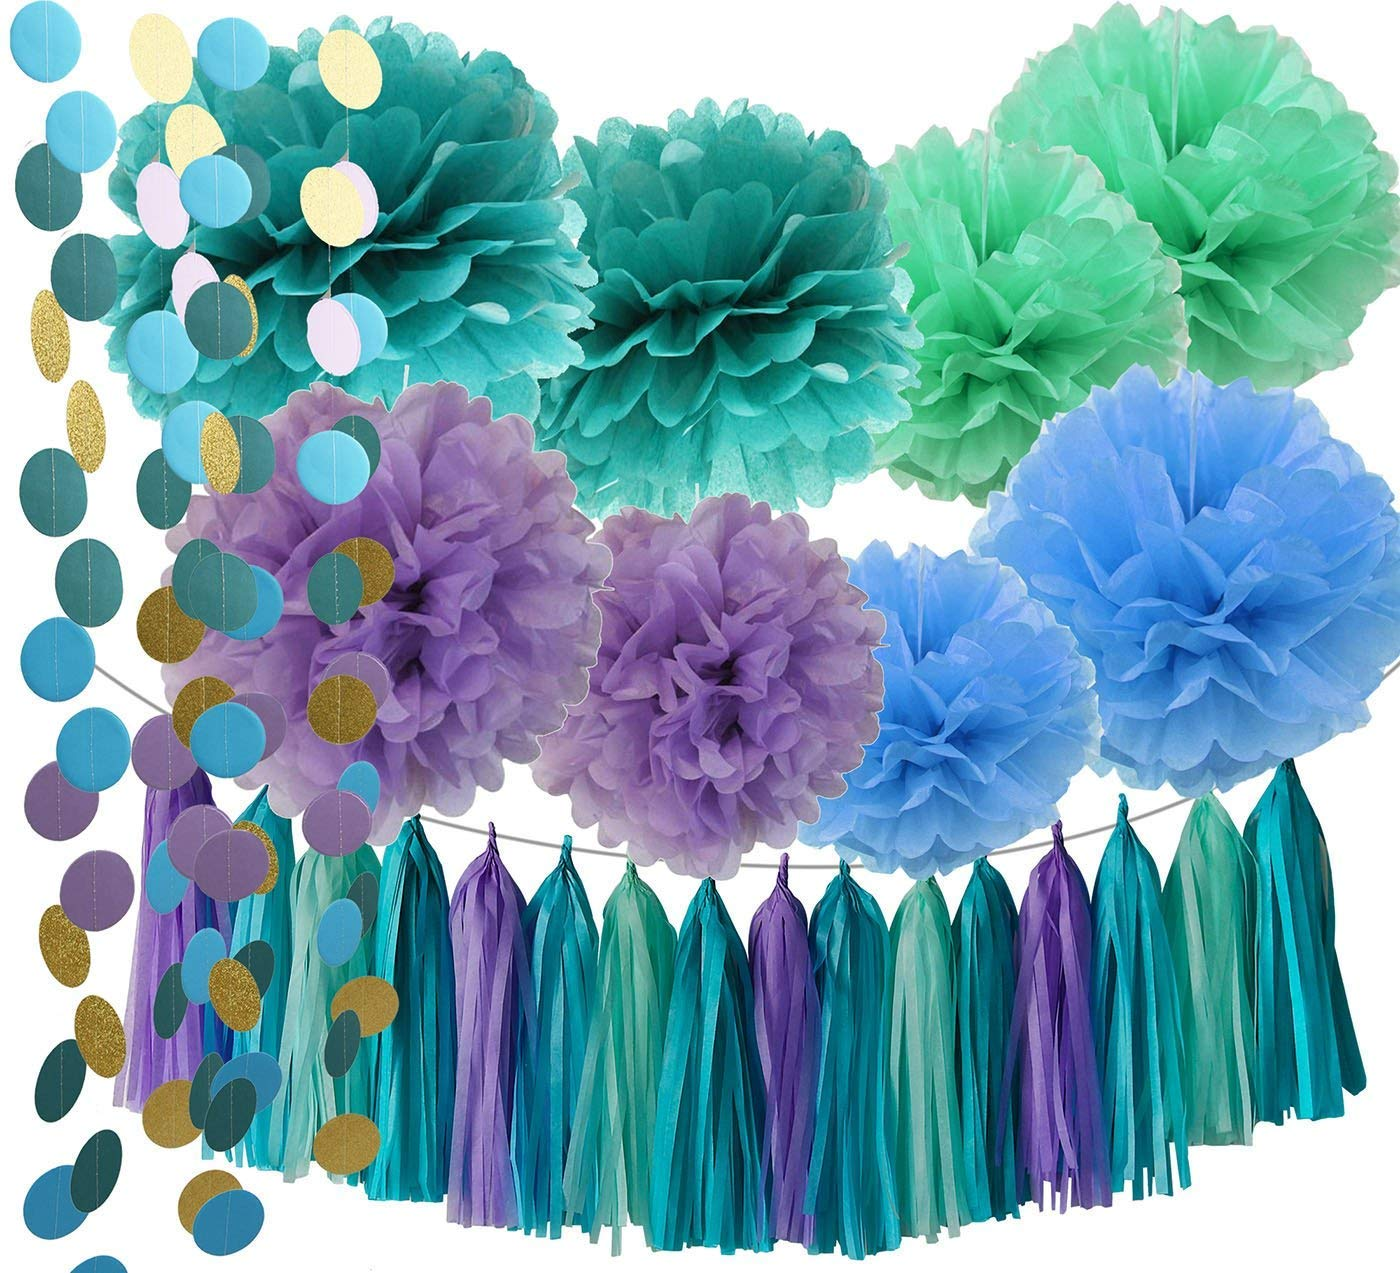 Monkey Home Under the Sea Party Supplies/Mermaid Decorations Teal Purple Blue Mint turquoise Tissue Pom Poms First Birthday Decorations Baby Shower Decorations Purple Mermaid Party Supplies/Mermaid Bridal Shower Decor Umiss Paper